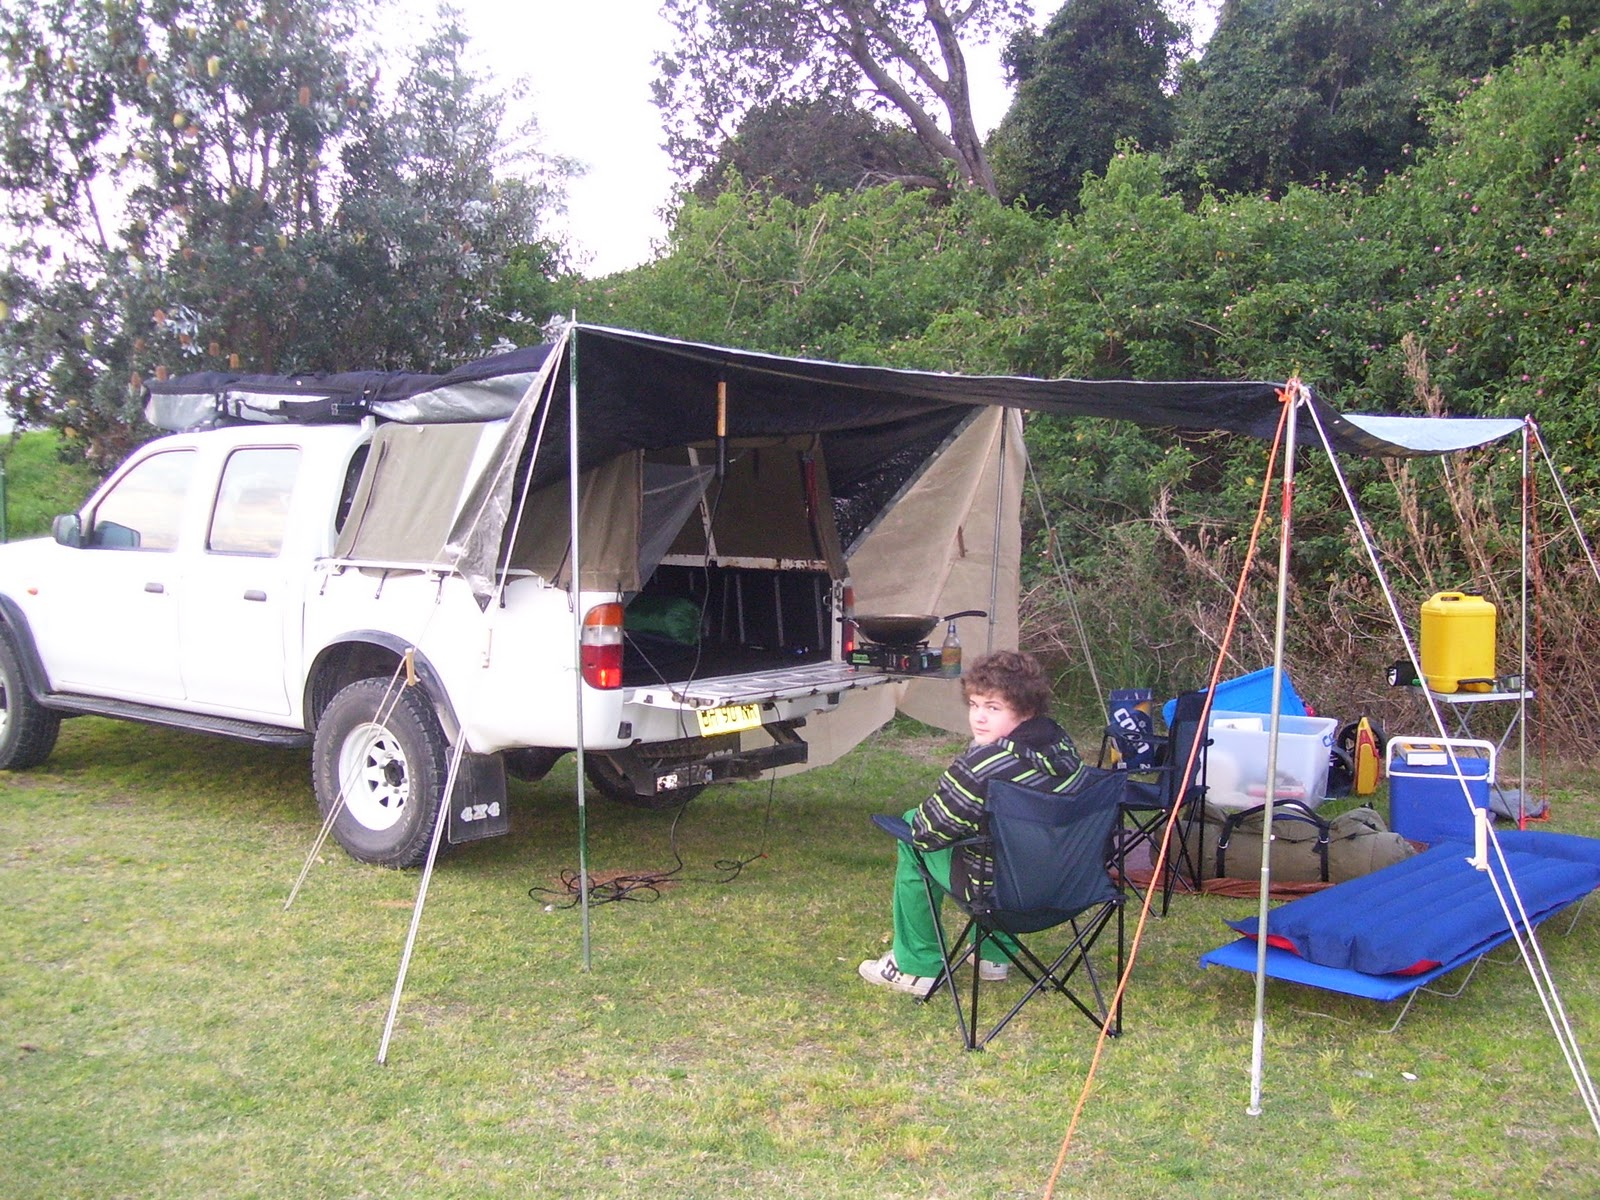 Caravans By Joatman All Purpose Camping Surfing